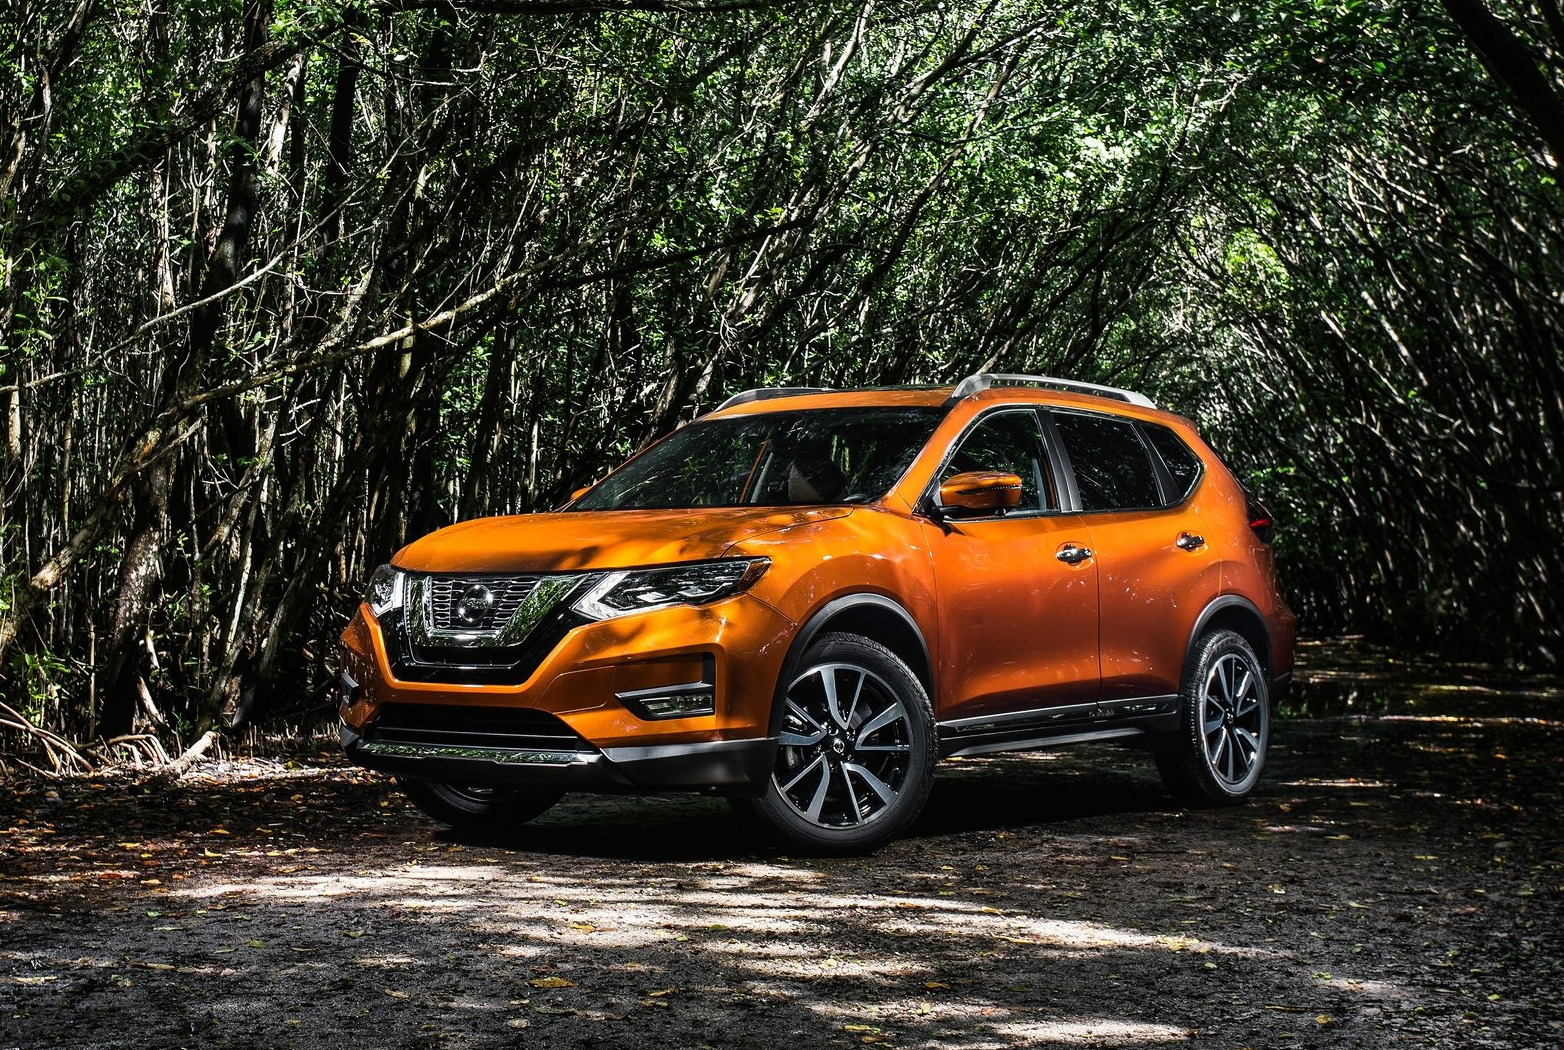 Nissan Rogue – How Does it Compare to the Competition?